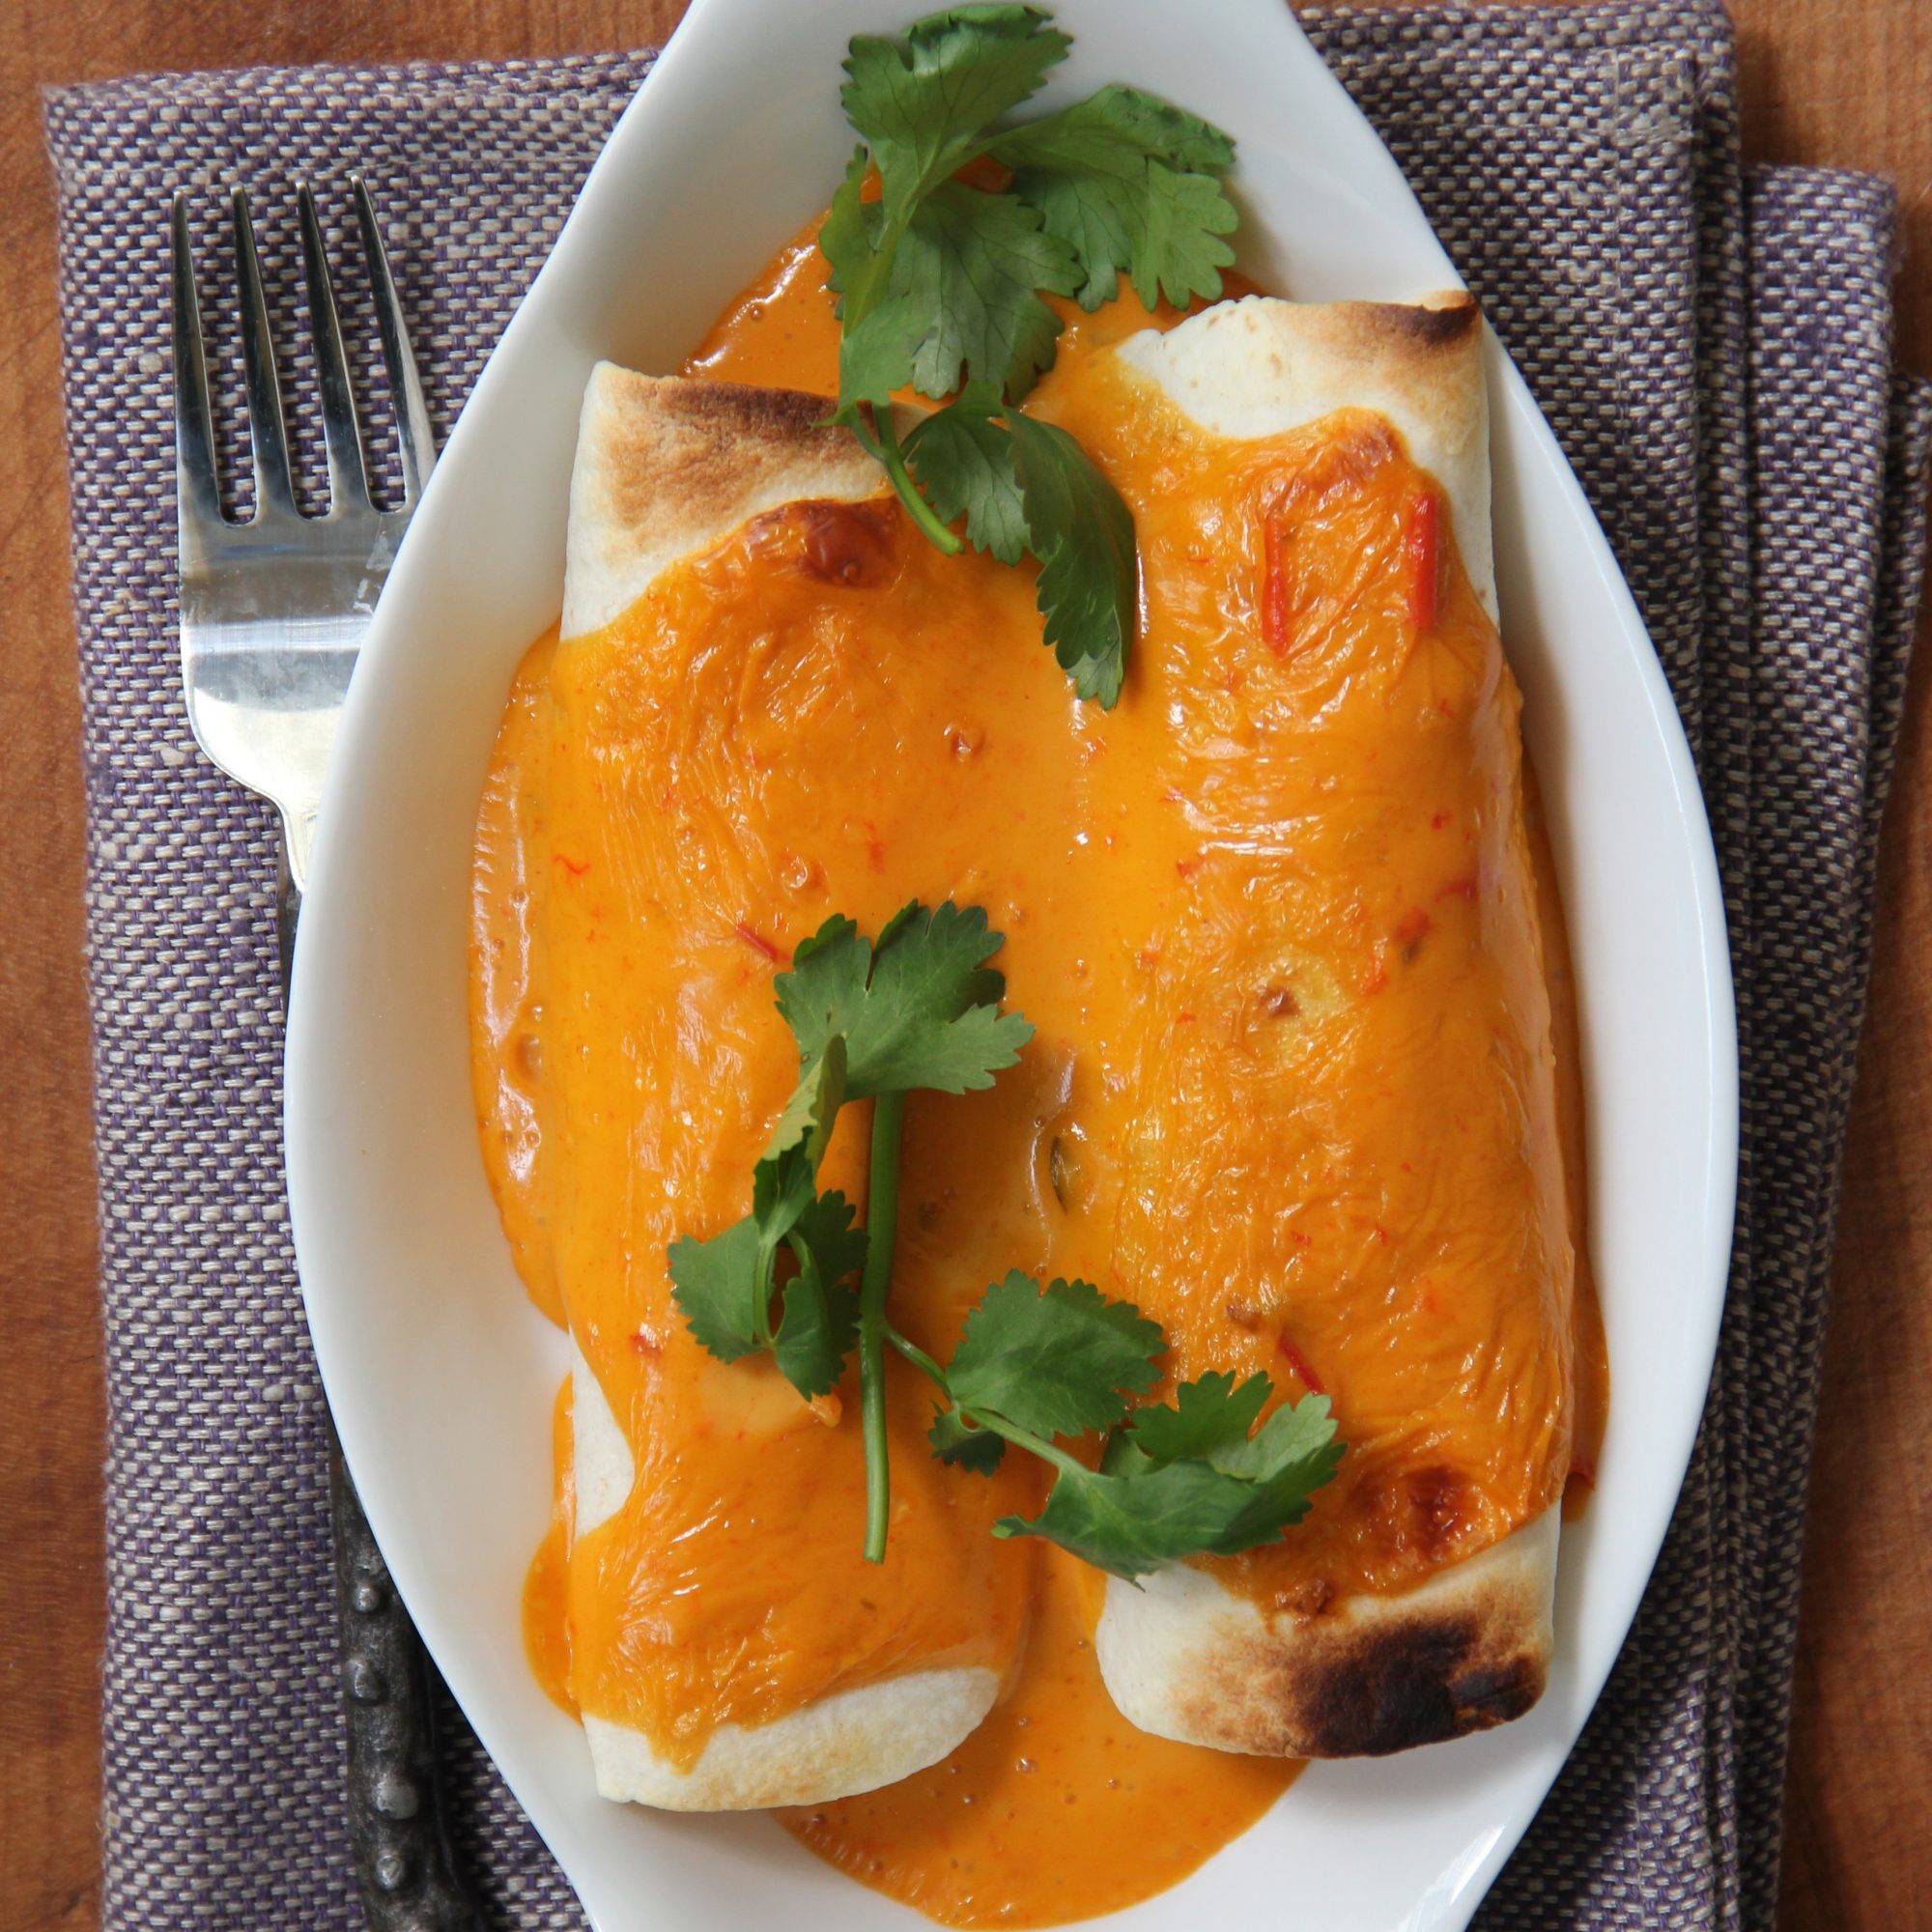 hd-201404-r-cheesy-chicken-enchiladas.jpg